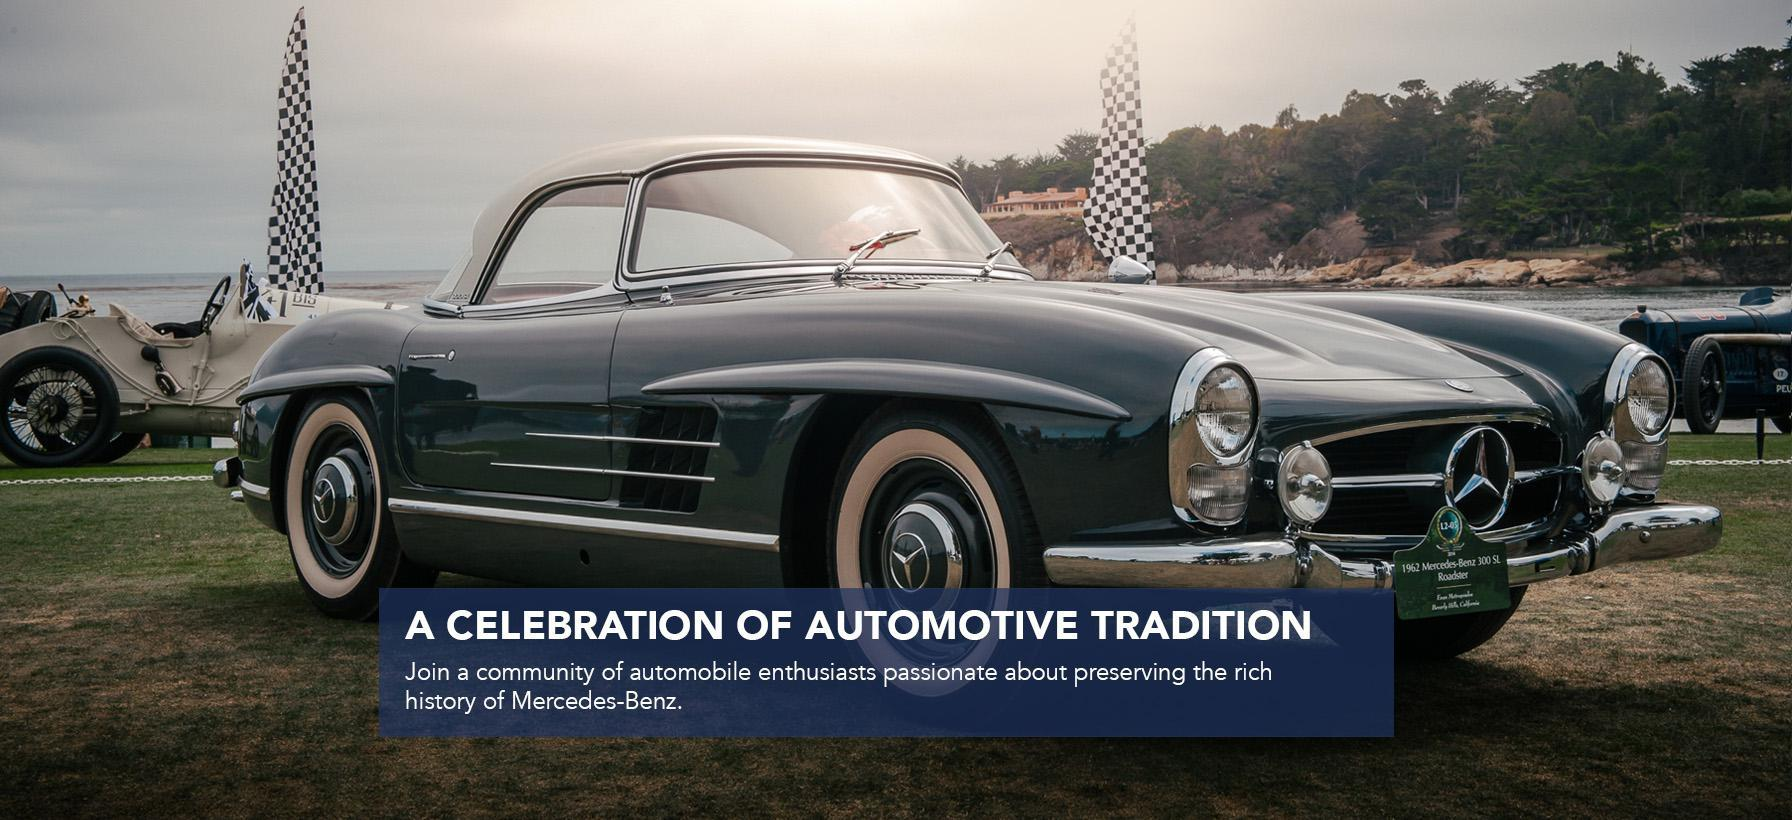 The Long Beach   South Bay Section Of The Mercedes Benz Club Of America  (MBCA) Is Dedicated To Enhancing The Ownership Experience Of The Finest  Automobiles ...